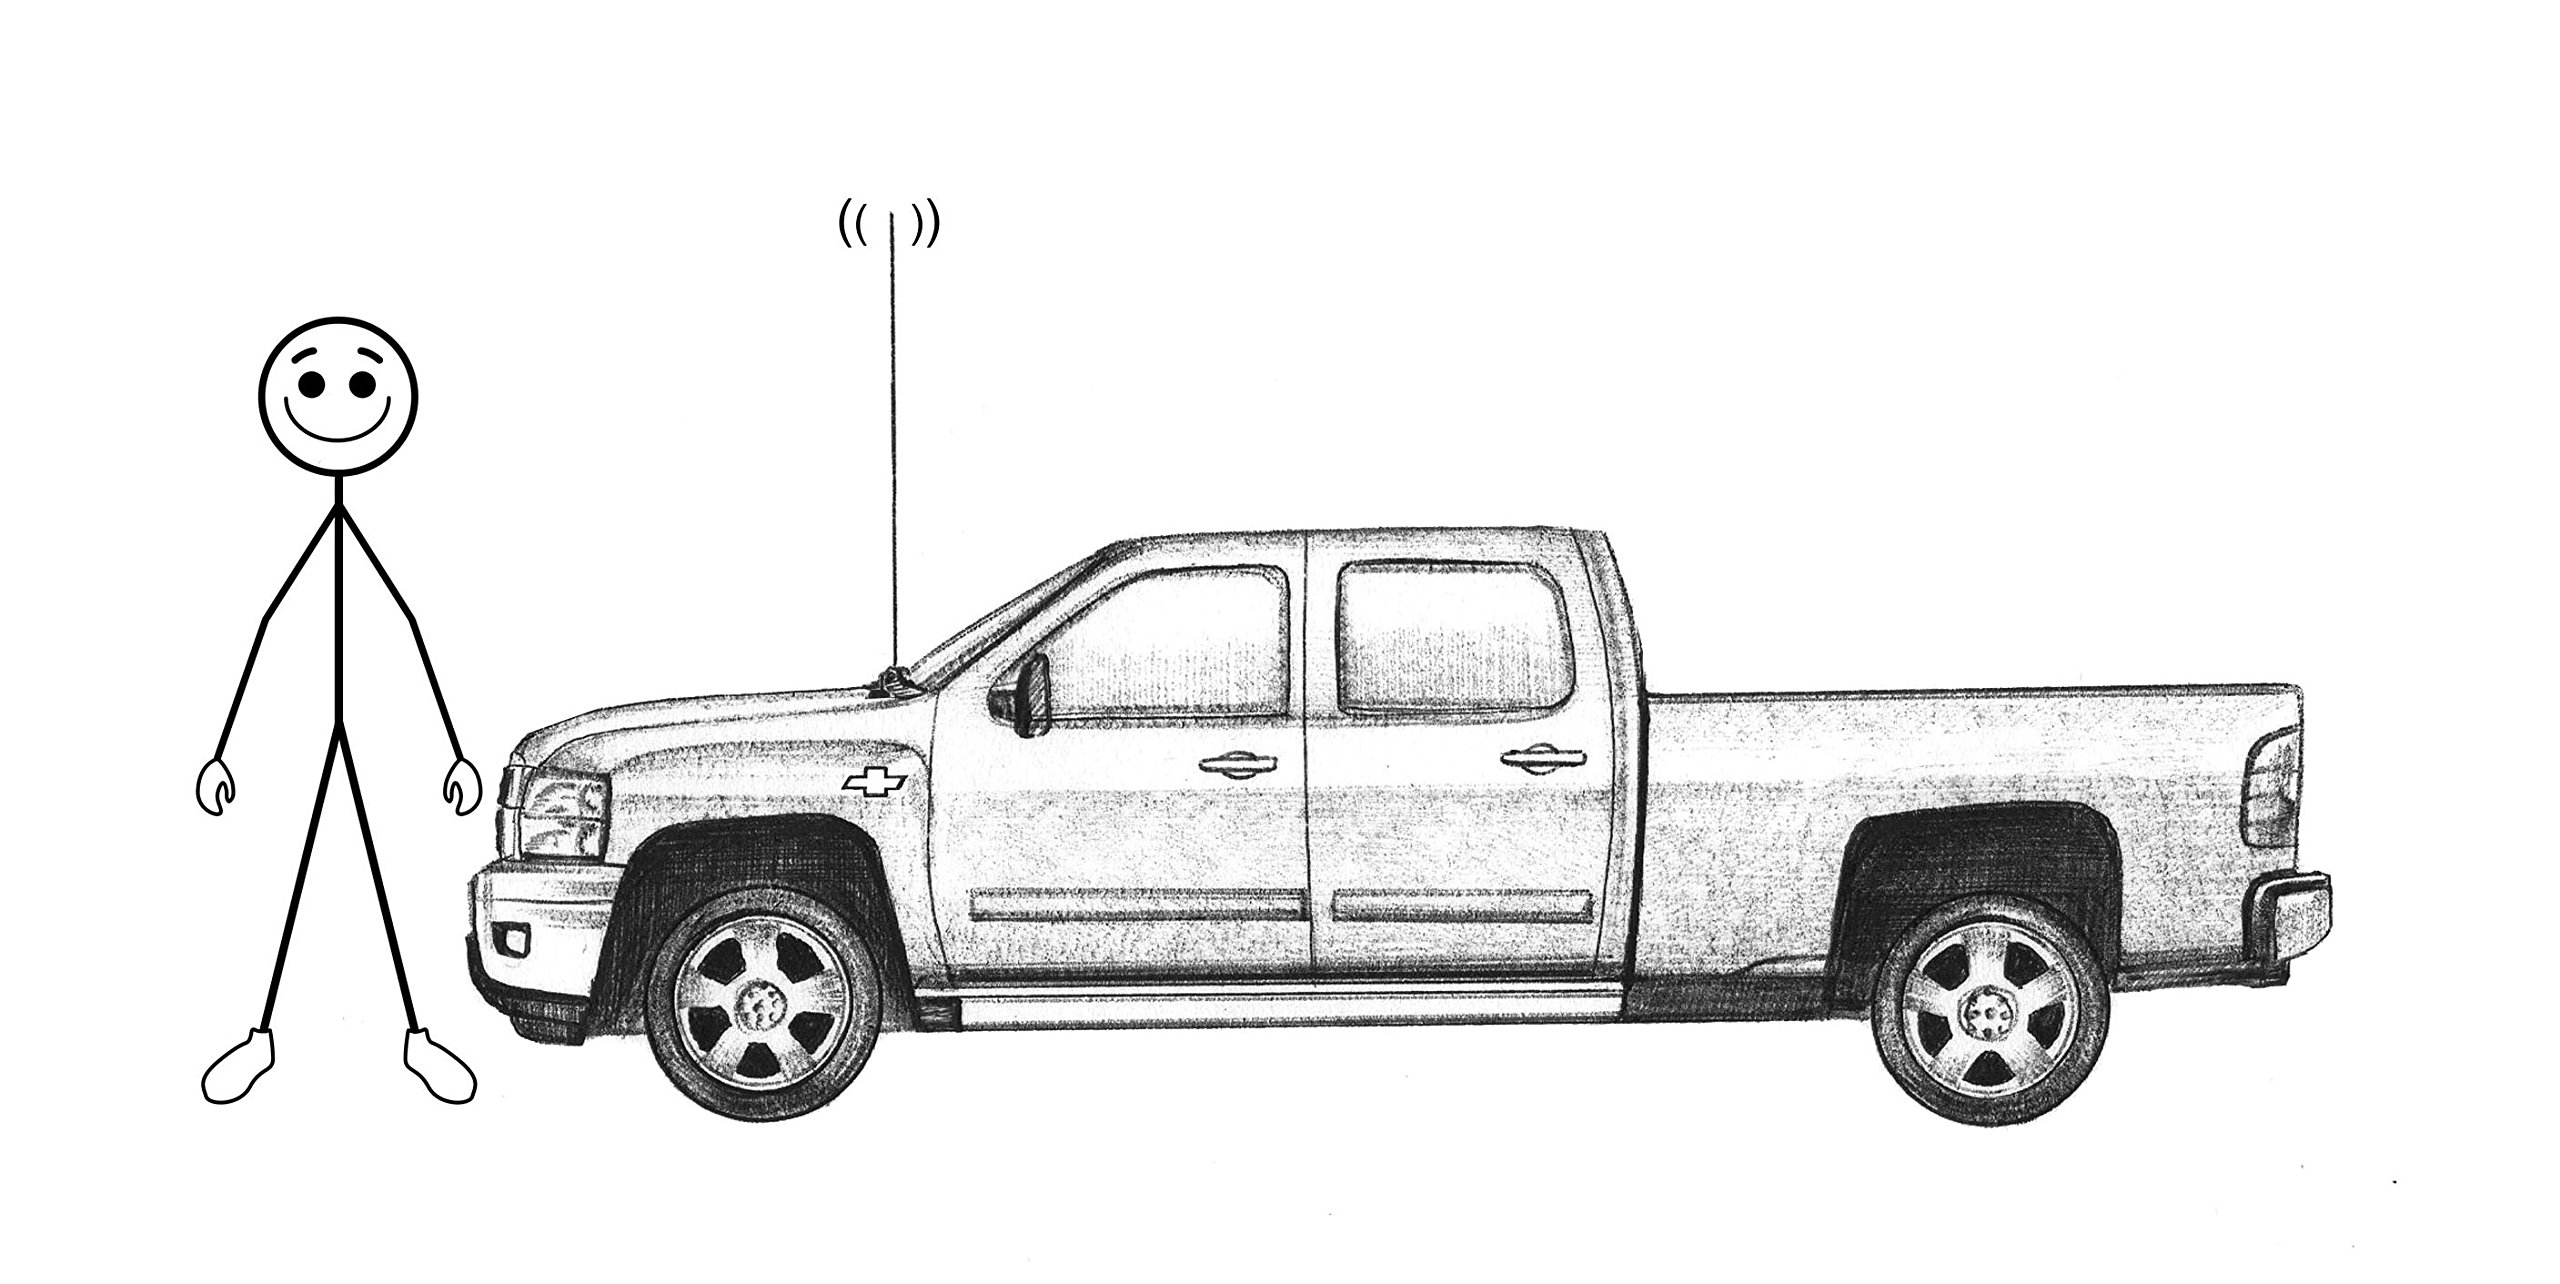 Easy Antenna Fix Chevy Truck, GMC or Cadillac--Antenna mount repair by Triluca